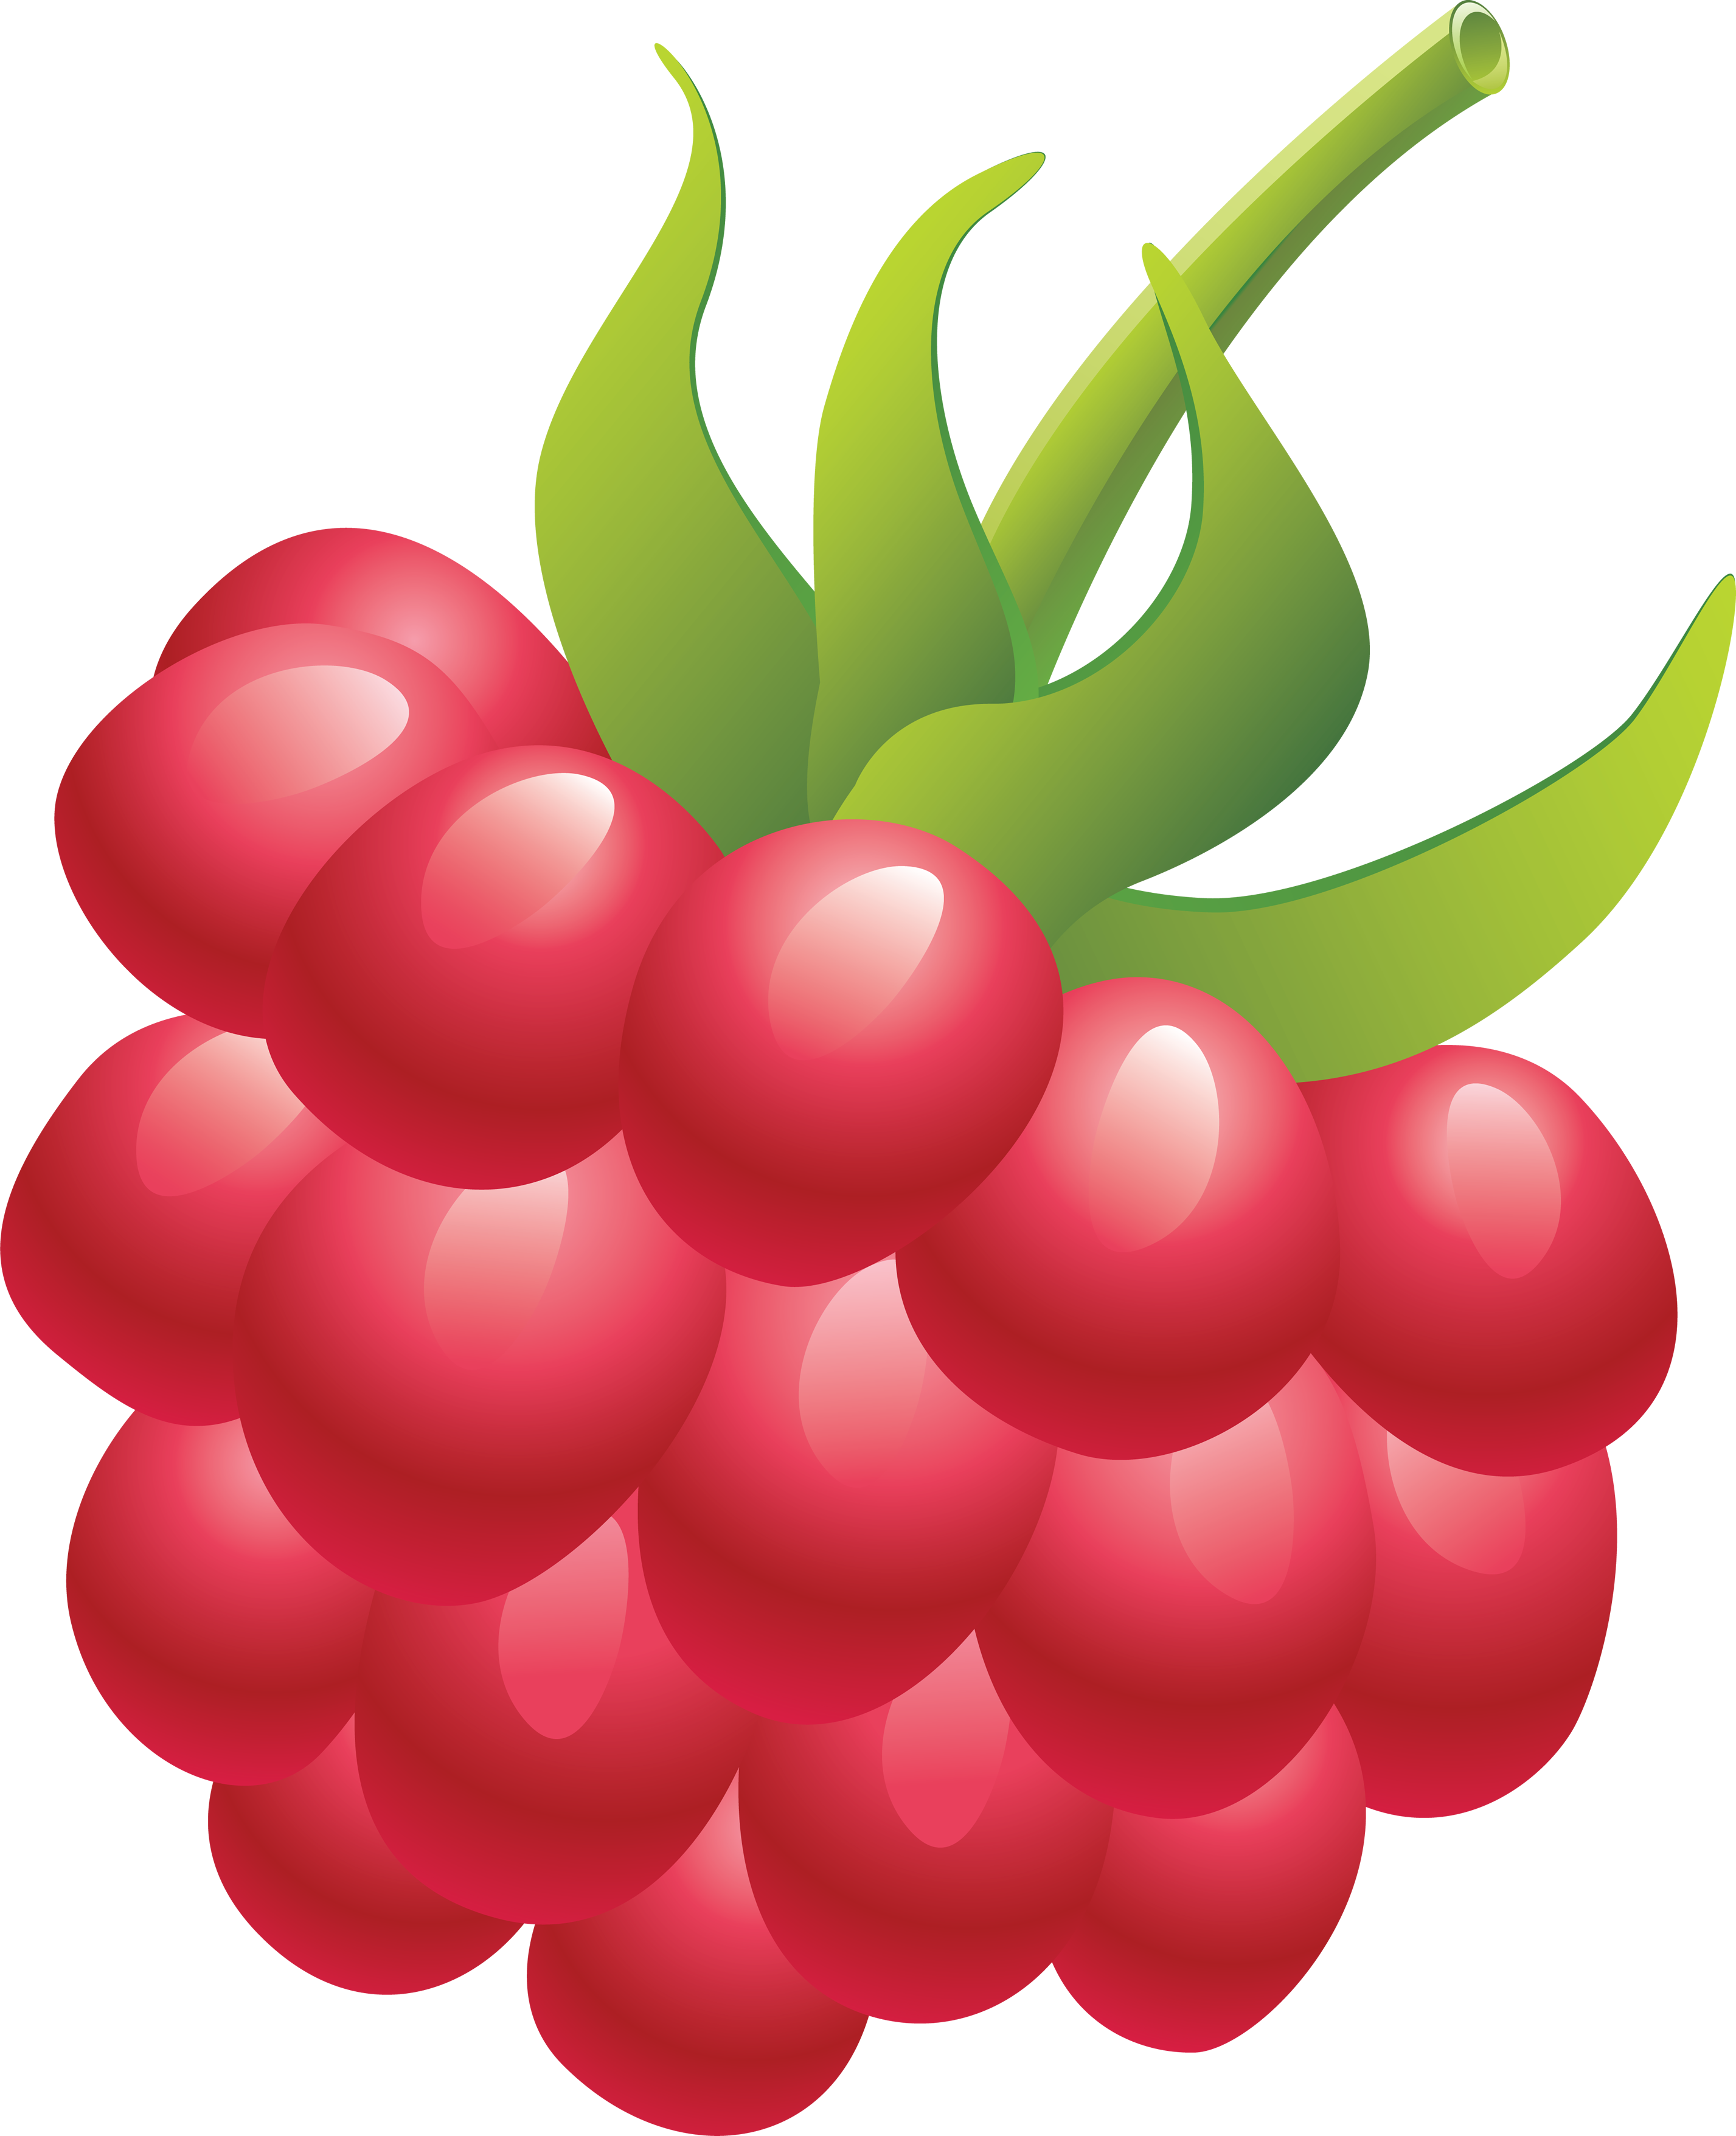 Pear clipart five. Raspberry isolated stock photo